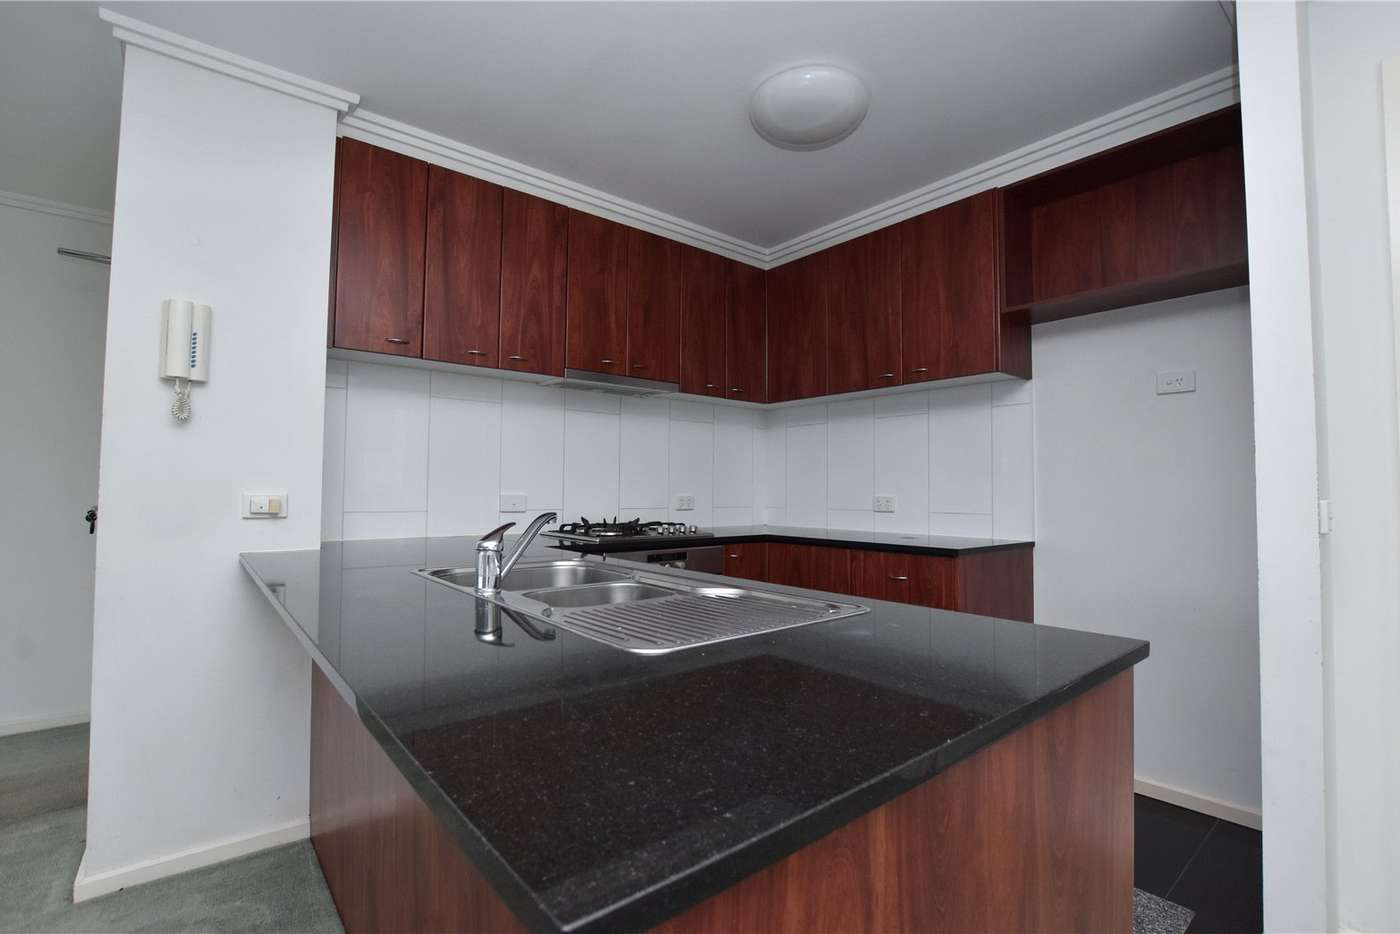 Sixth view of Homely apartment listing, 92/22 Kavanagh Street, Southbank VIC 3006